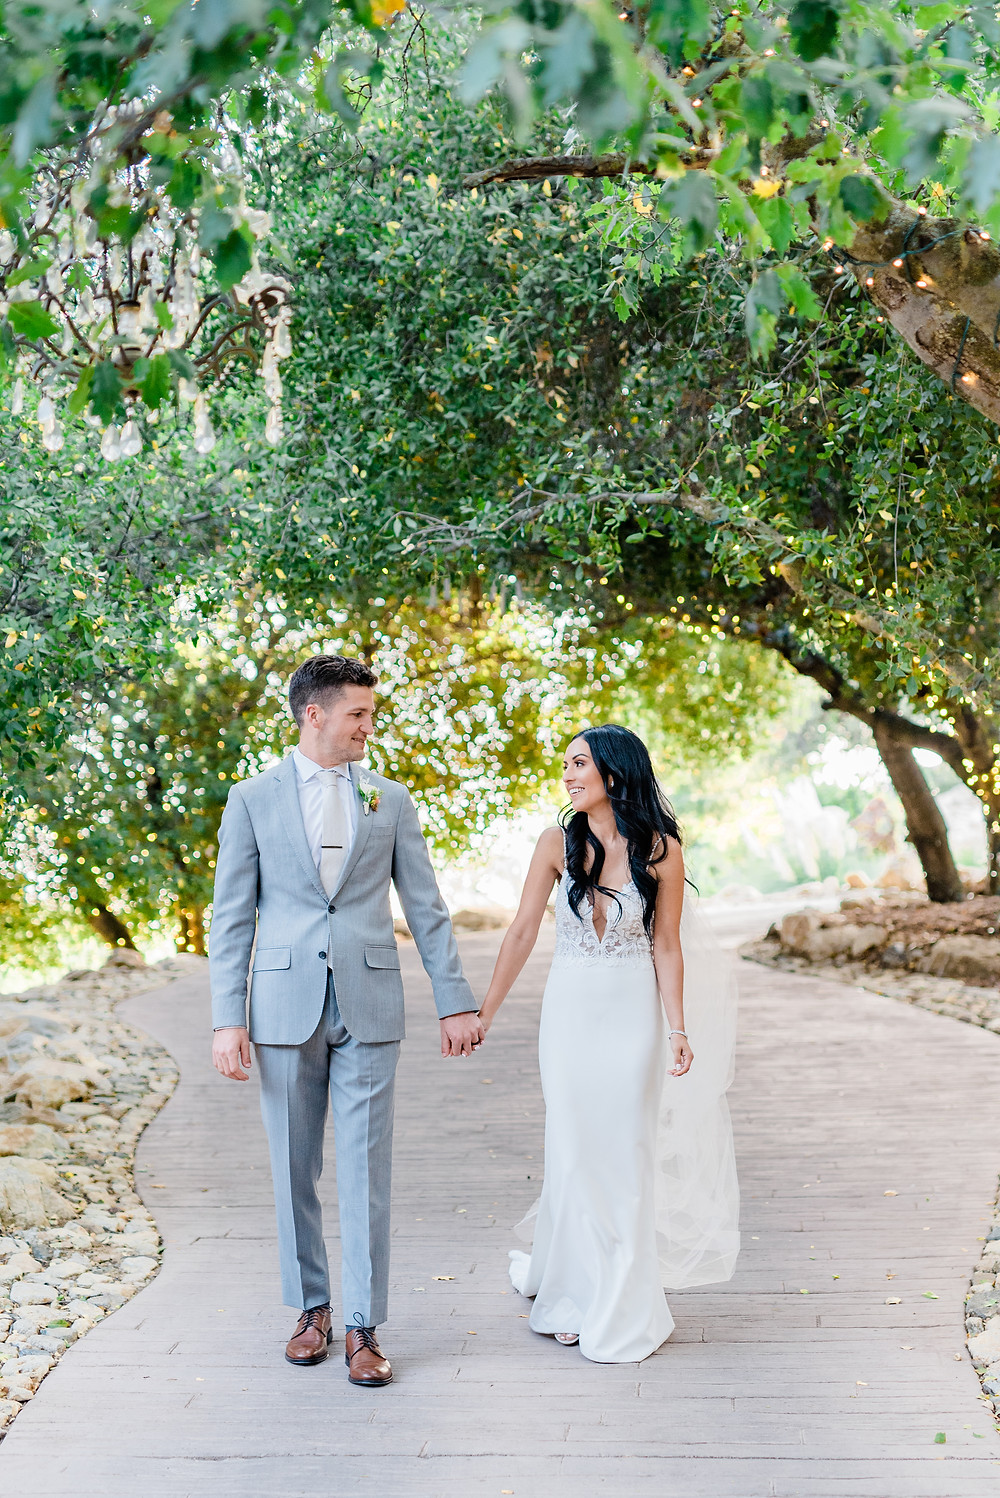 Stunning garden wedding at Serendipity in Oak Glen, elegant bride and groom with neutral​ color palette